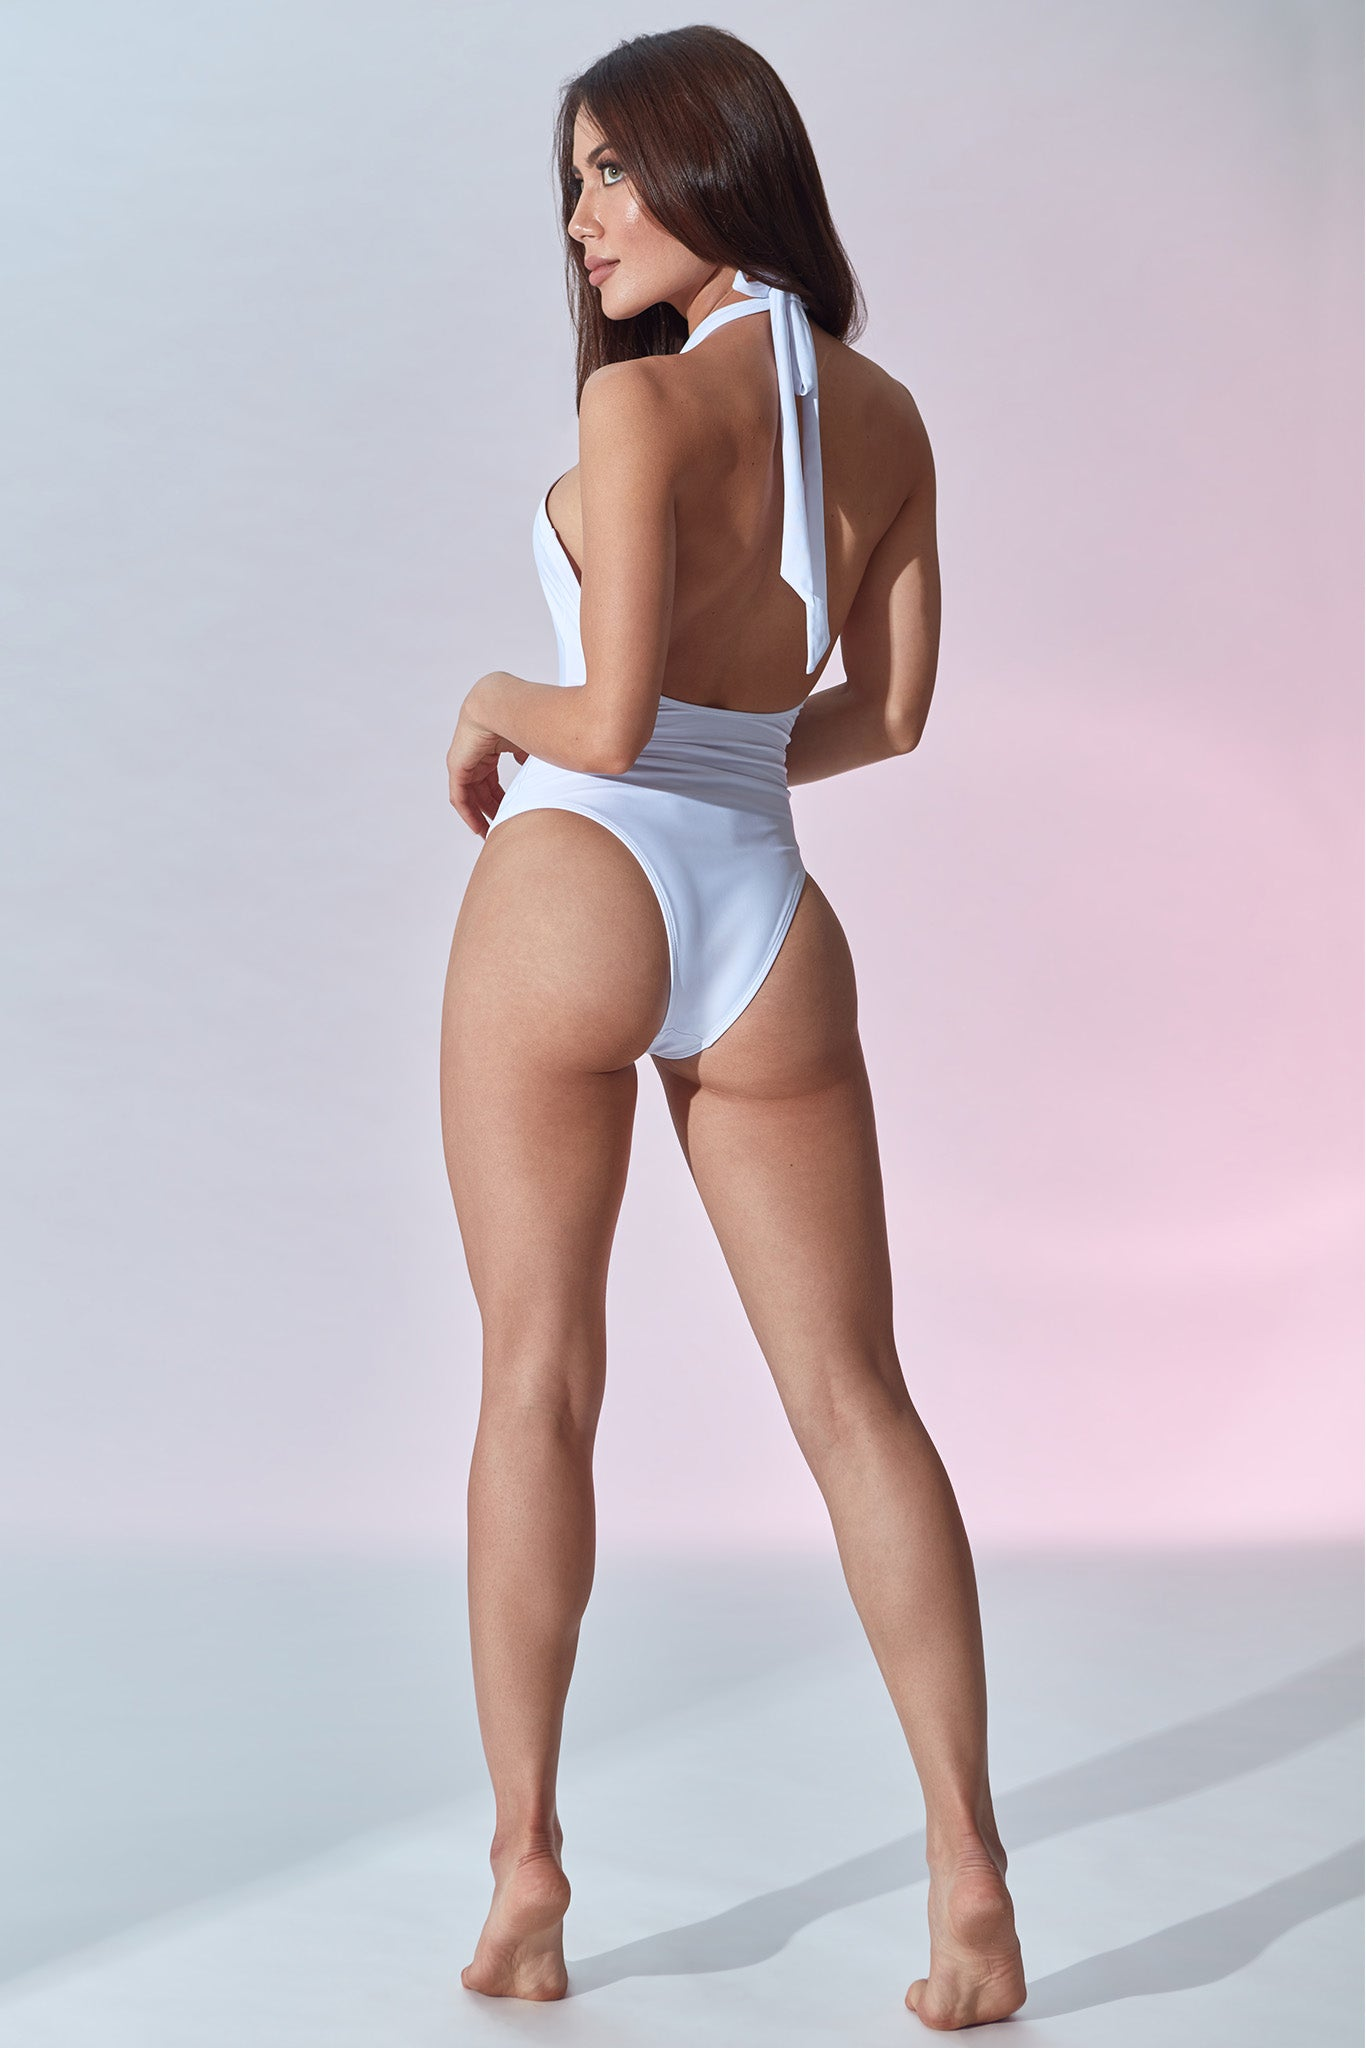 Setai Swimsuit - White - Side Back